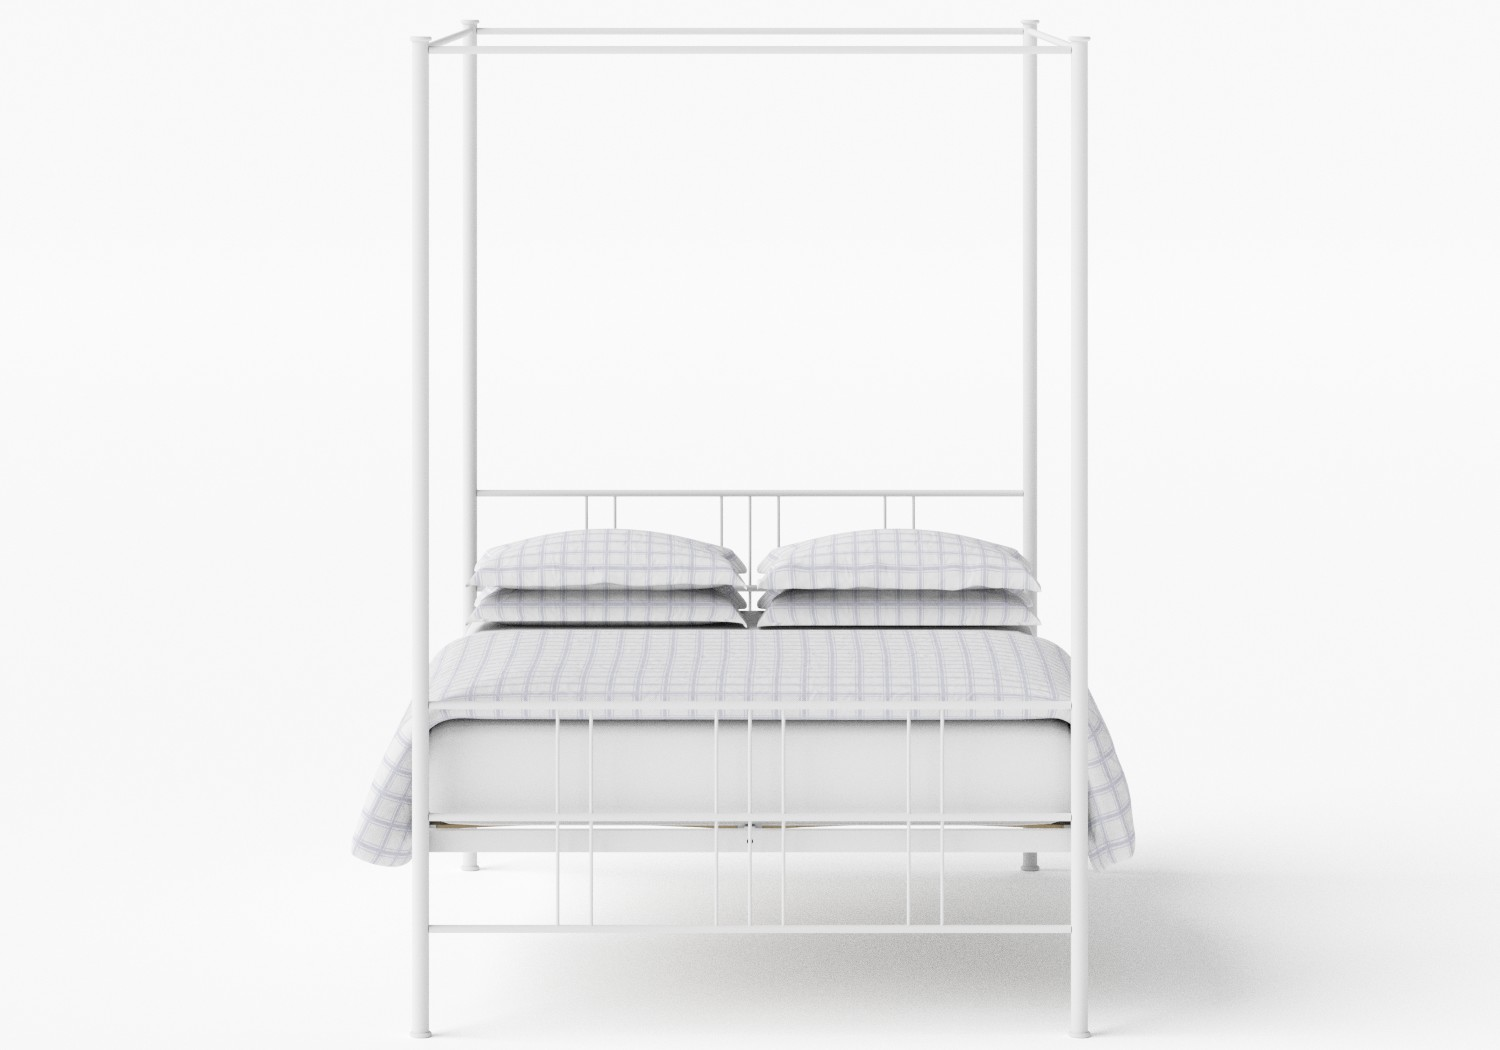 Toulon iron bed in White